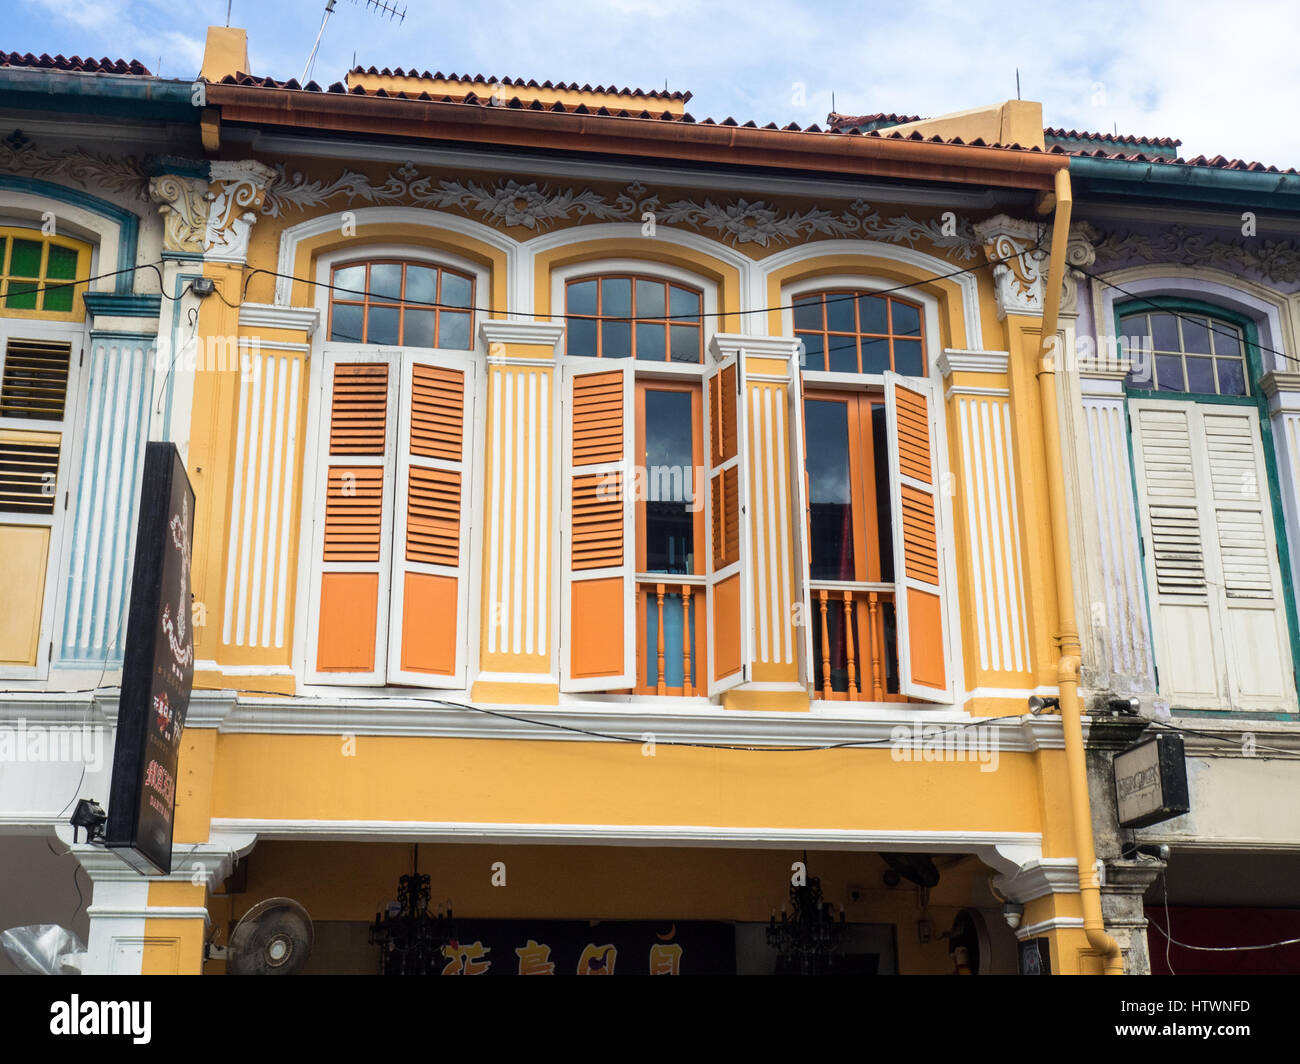 Colourfully painted Singaporean shophouse in Rochor, Singapore. - Stock Image